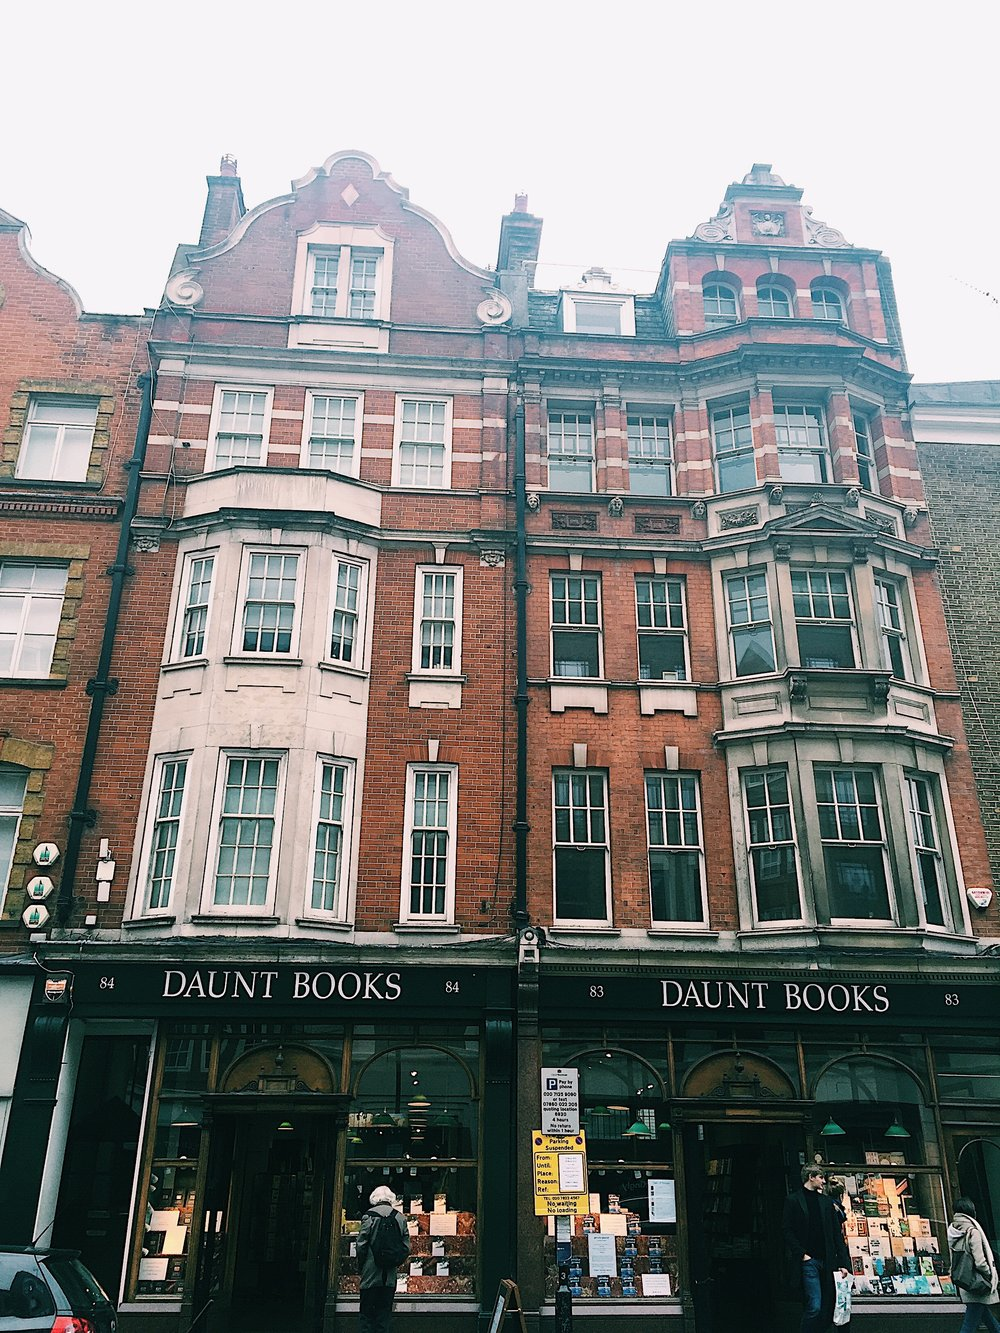 My favorite bookstore in all the land, Daunt Books on Marylebone Street.